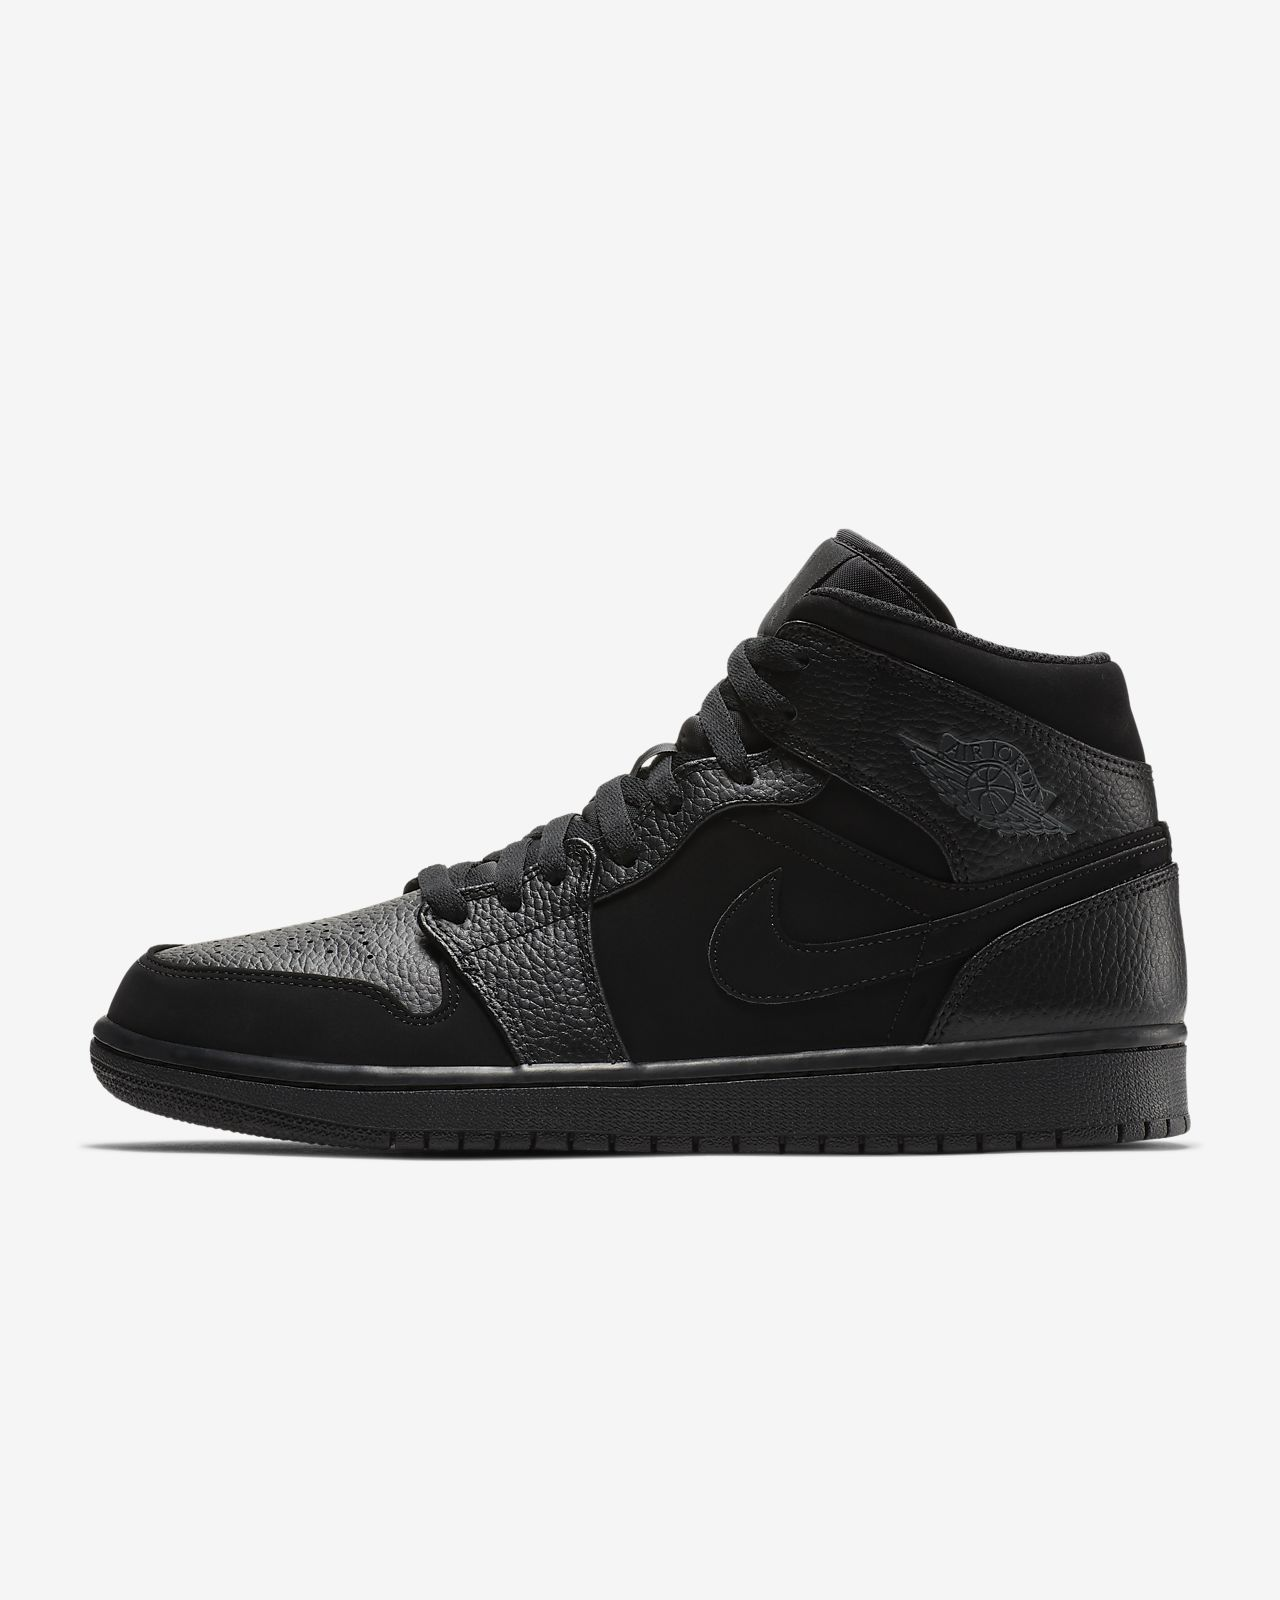 chaussures de sport 1f5e7 f3a30 Air Jordan 1 Mid Men's Shoe